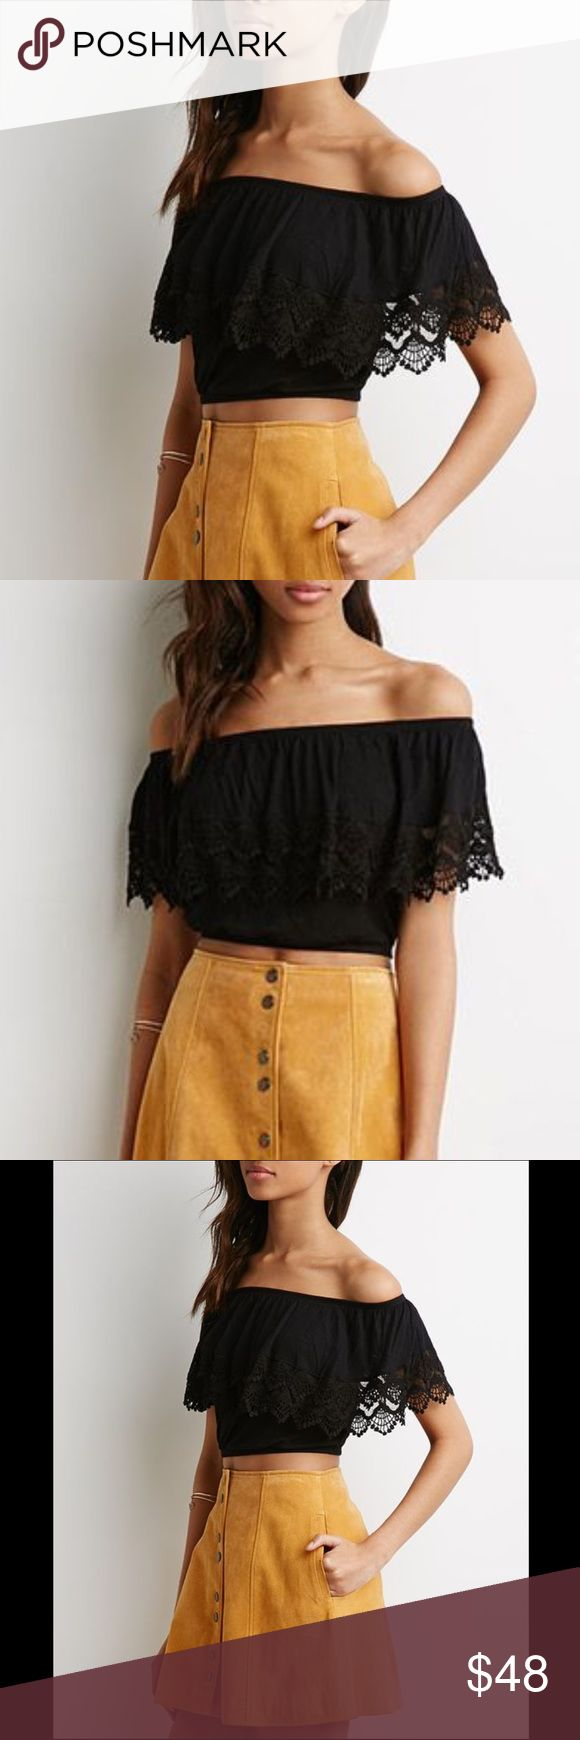 FREE PEOPLE Off Shoulder Flounce Festival Crop Top Free People Black Crochet Lace Pom Pom Off Shoulder Festival Crop Top. Retail price is $78. Size Medium but can also fit a size Large. Mint condition with no flaws. From a clean and smoke free home. No trades please 💕 Free People Tops Crop Tops